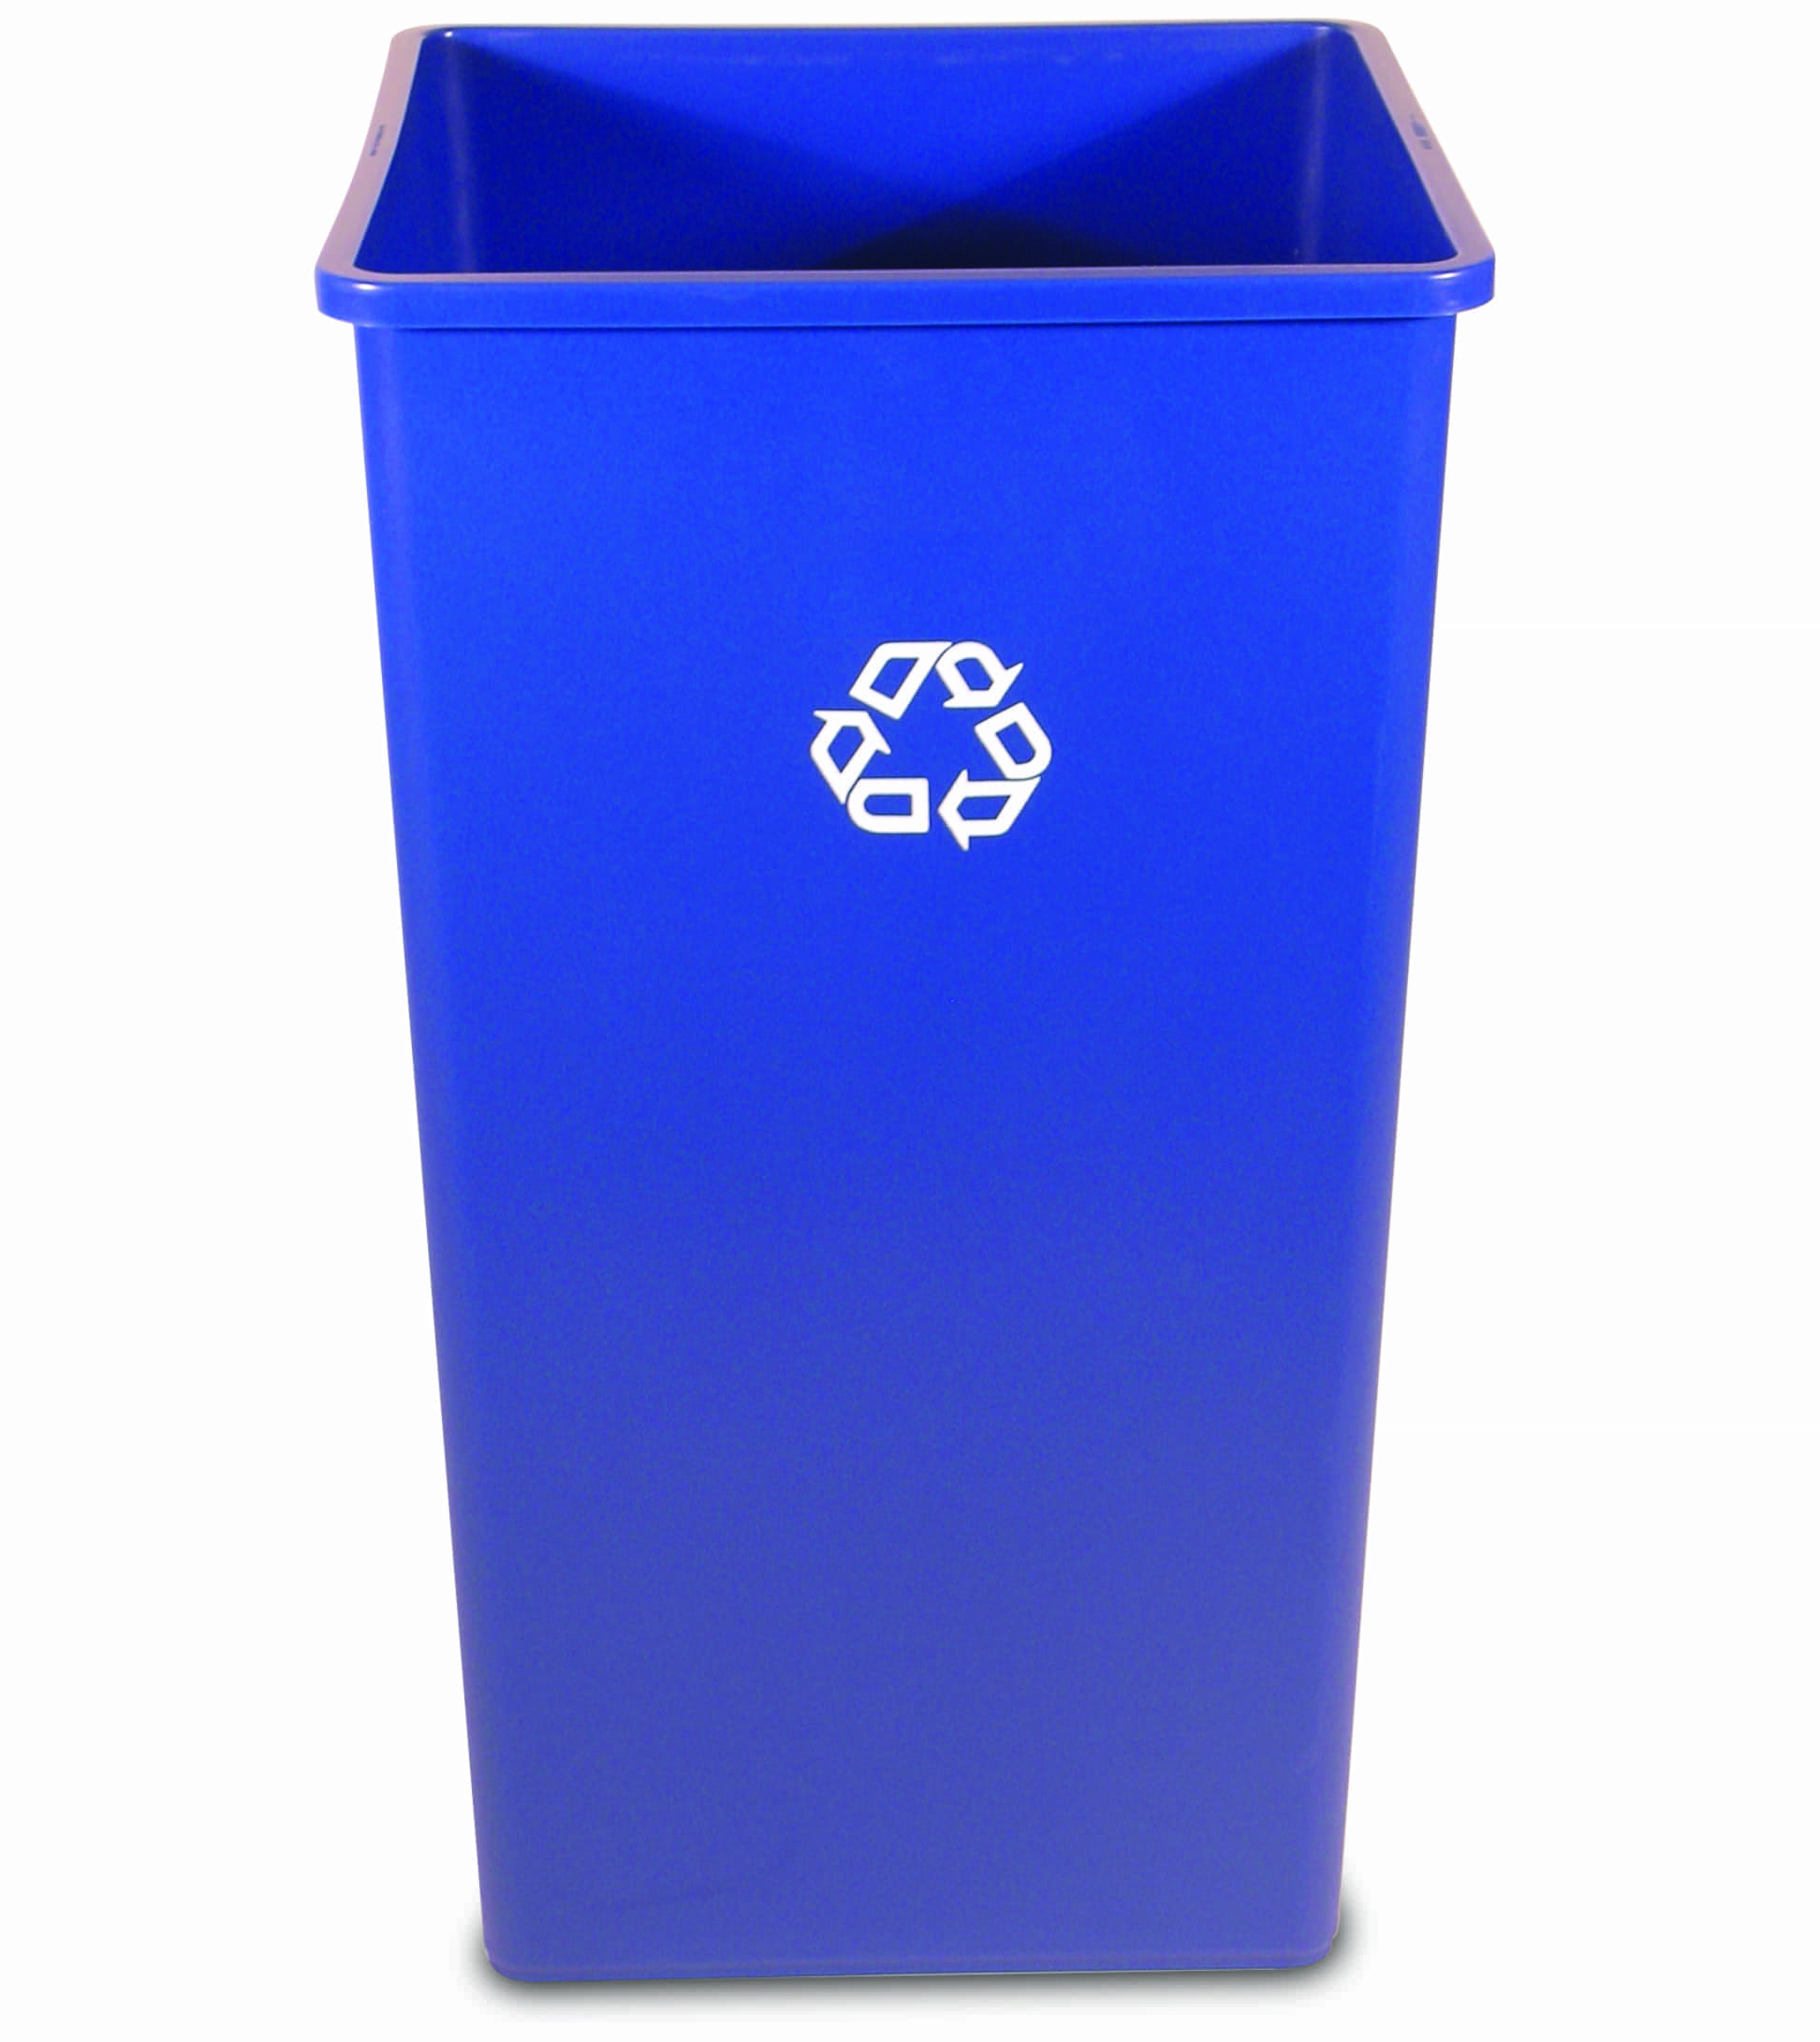 Slimline Classic Recycling Bin further Stanley Fatmax Hard Base Tool Bag in addition Slip Led Brick Light Cool White 3w as well Plastic Bottles Cans Recycling Programme Sign together with Evolution Precision Minibelt2 Thin Belt Sander 240v. on outdoor recycling cans